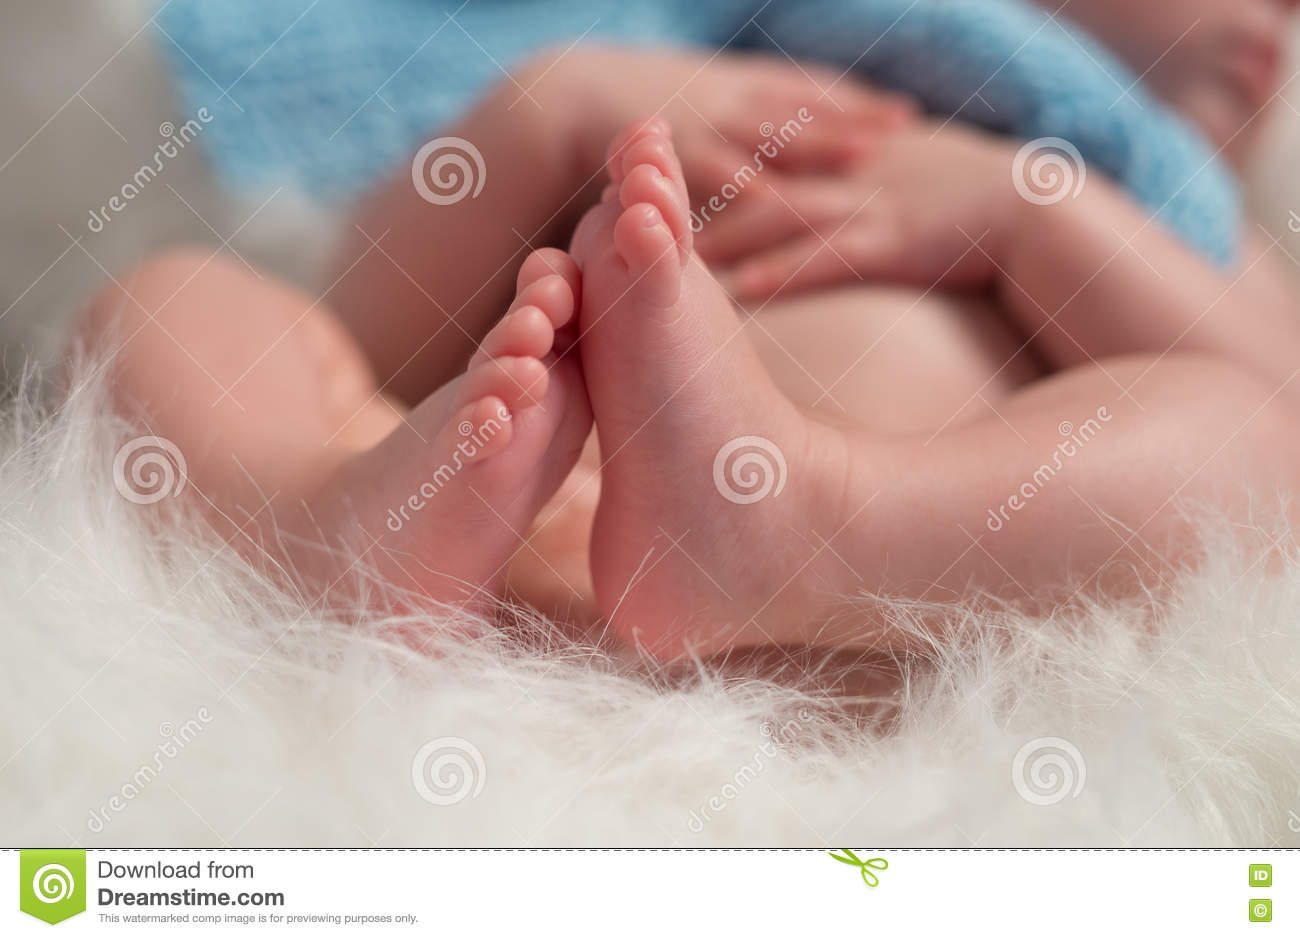 Folded legs of newborn baby closeup